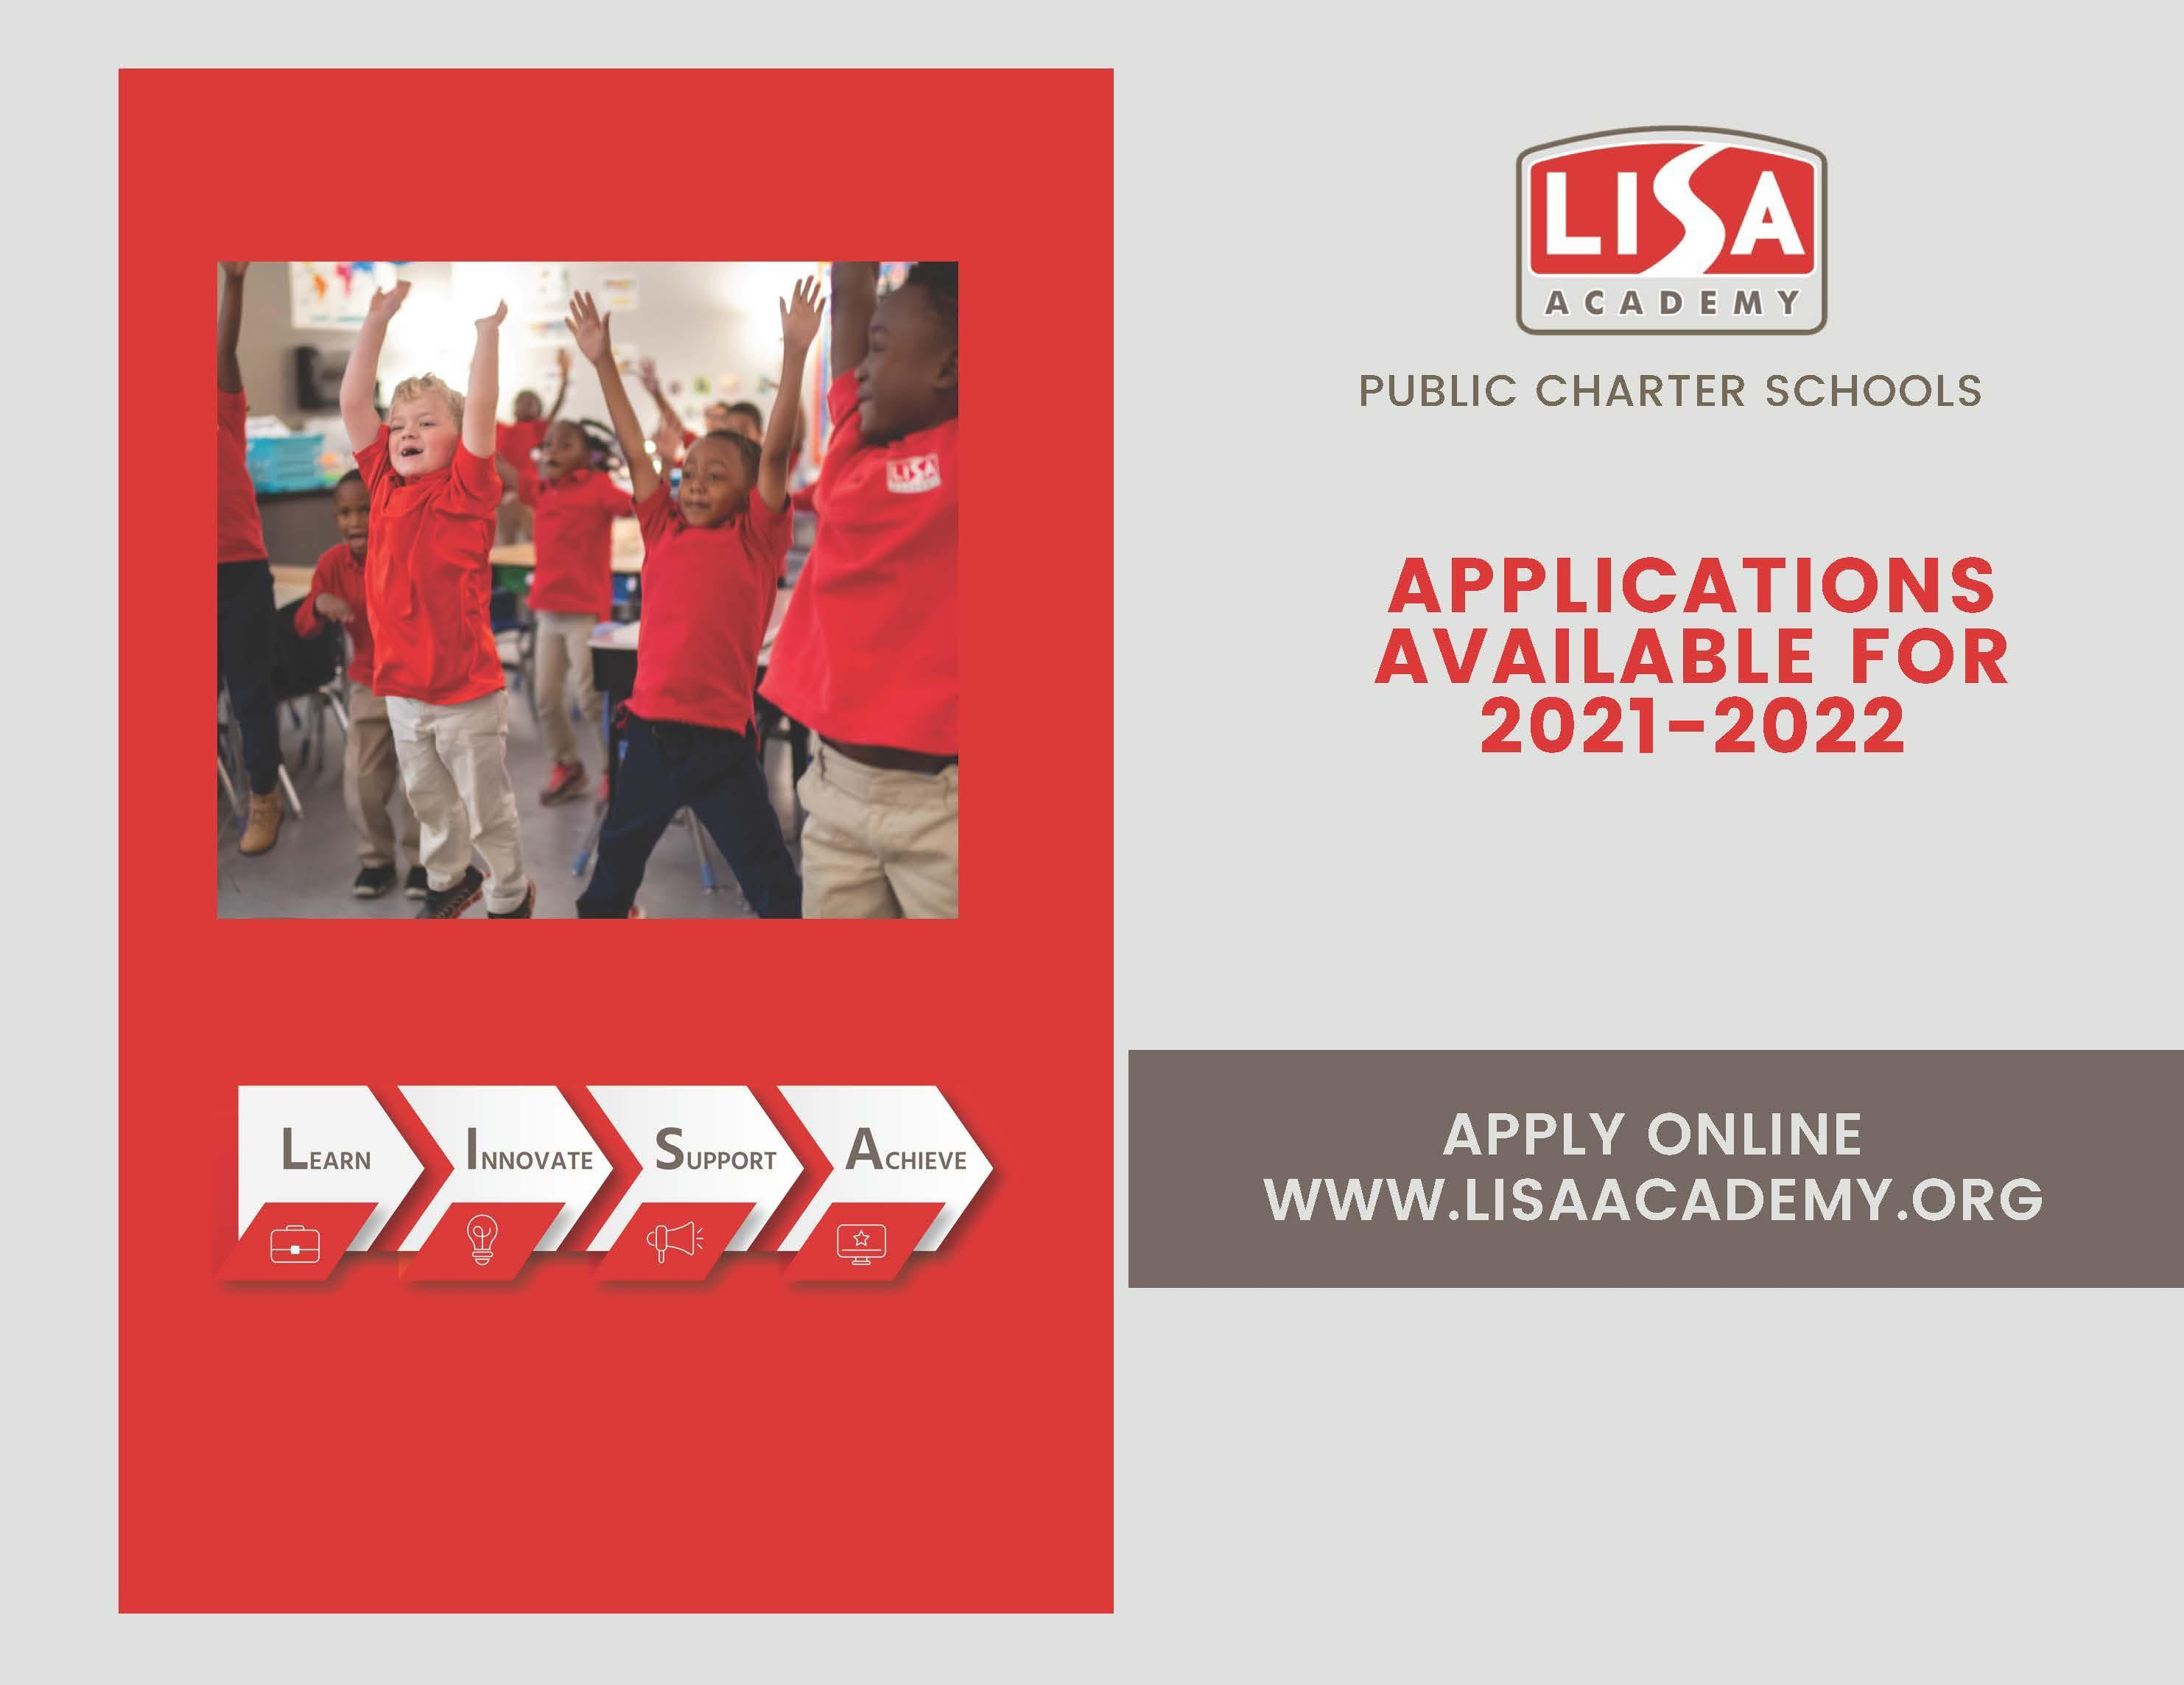 APPLY NOW FOR THE 2021-2022 SCHOOL YEAR Image